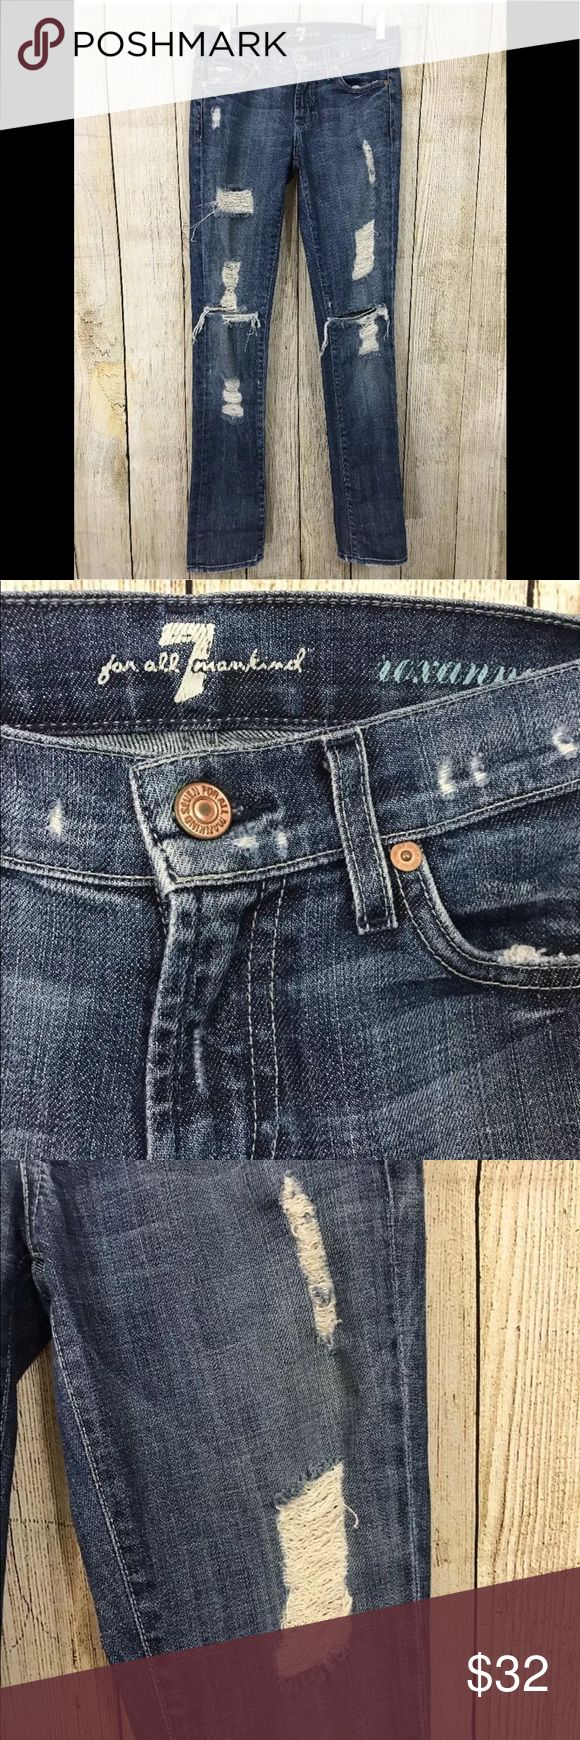 Seven 7 for all mankind Roxanne skinny jeans sz 24 Seven 7 jeans!!! Roxanne fit, skinny factory distressed super sexy! Size 24  917-098-P Seven7 Jeans Skinny